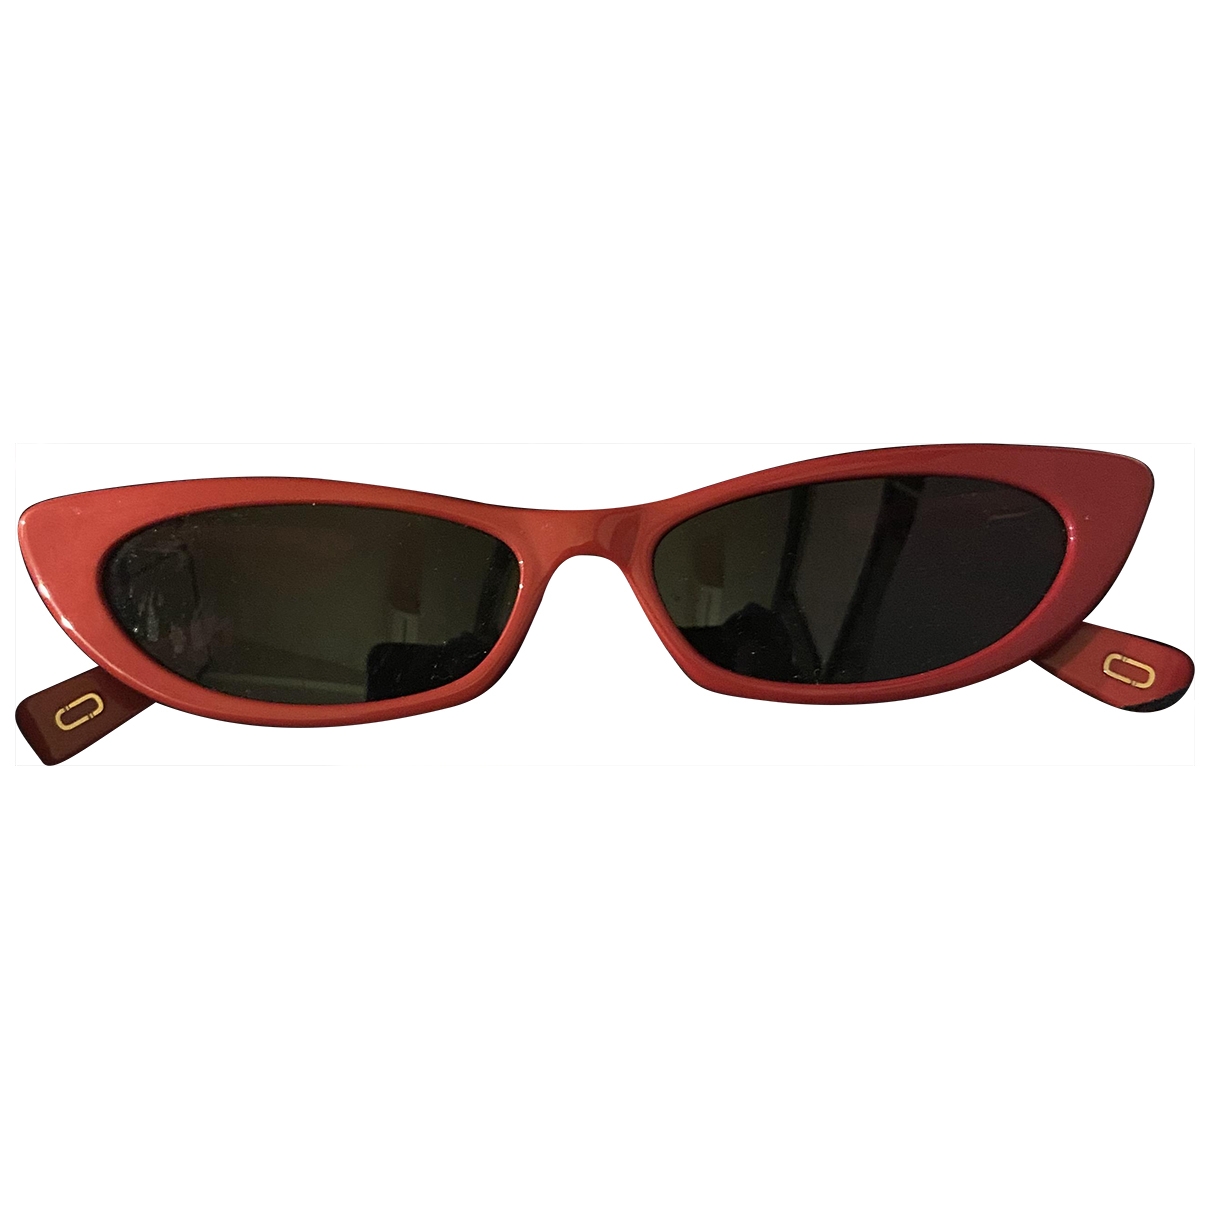 Marc Jacobs N Red Sunglasses for Women N